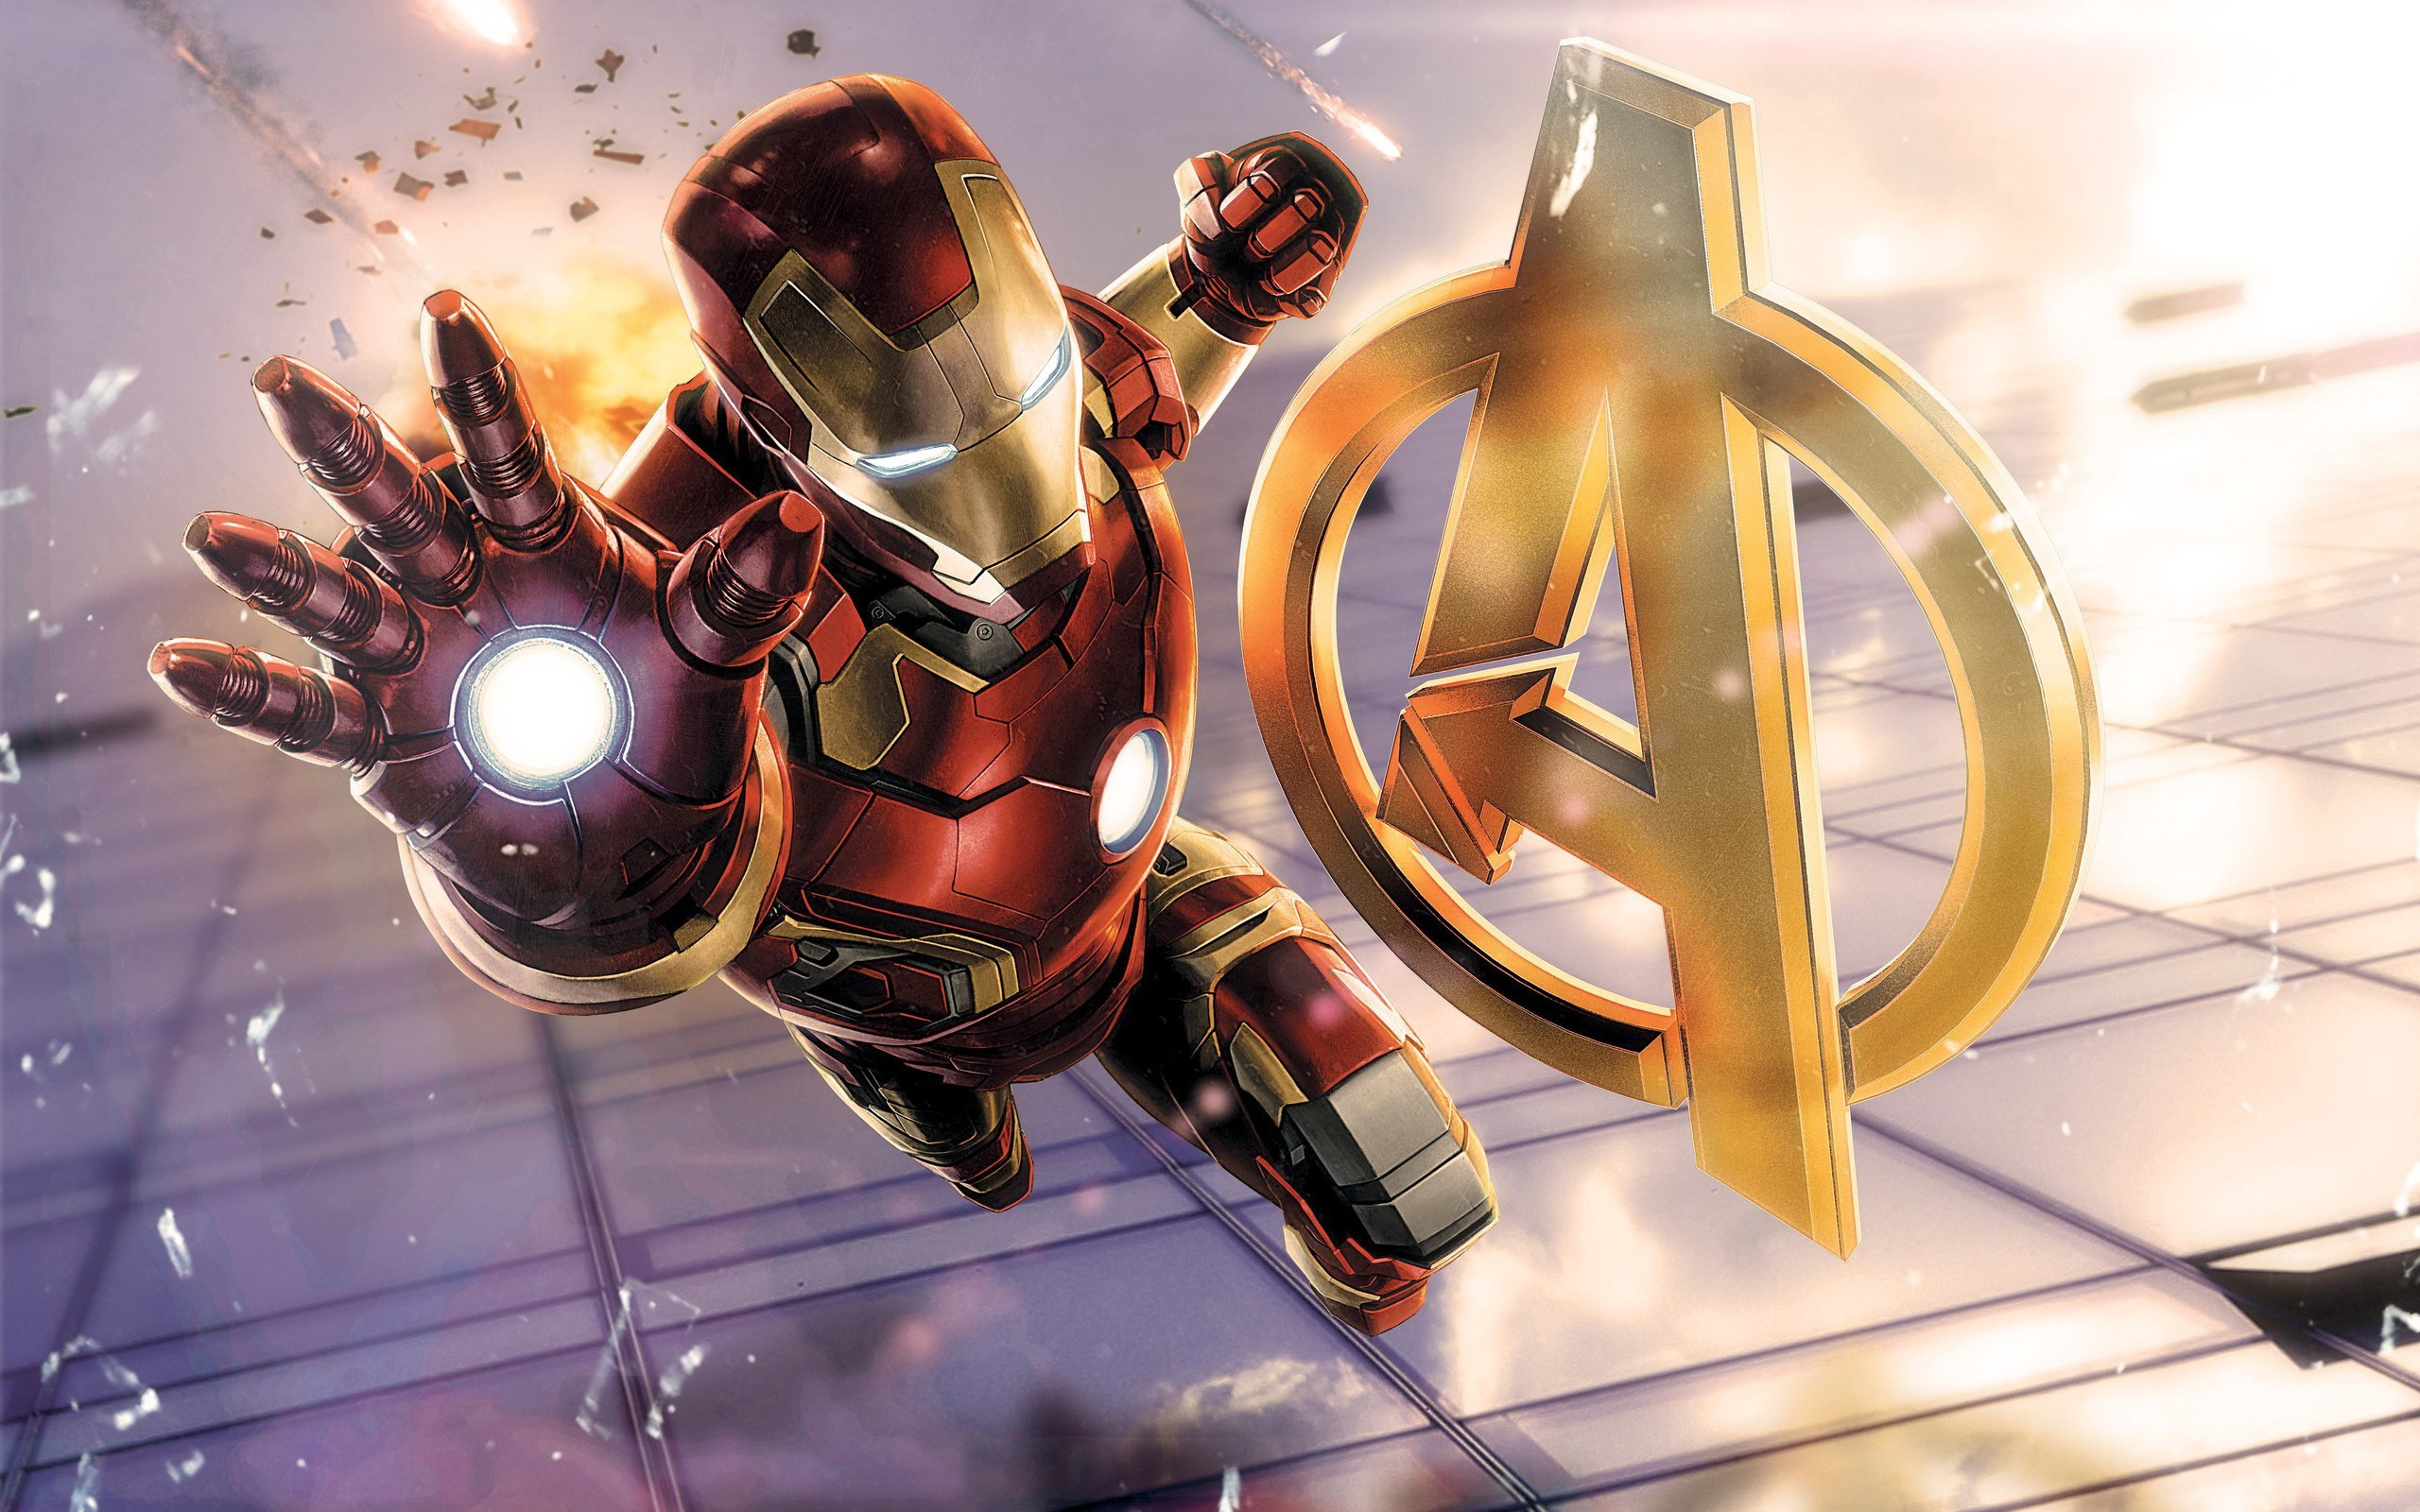 Iron Man Avengers 2048x1152 Resolution